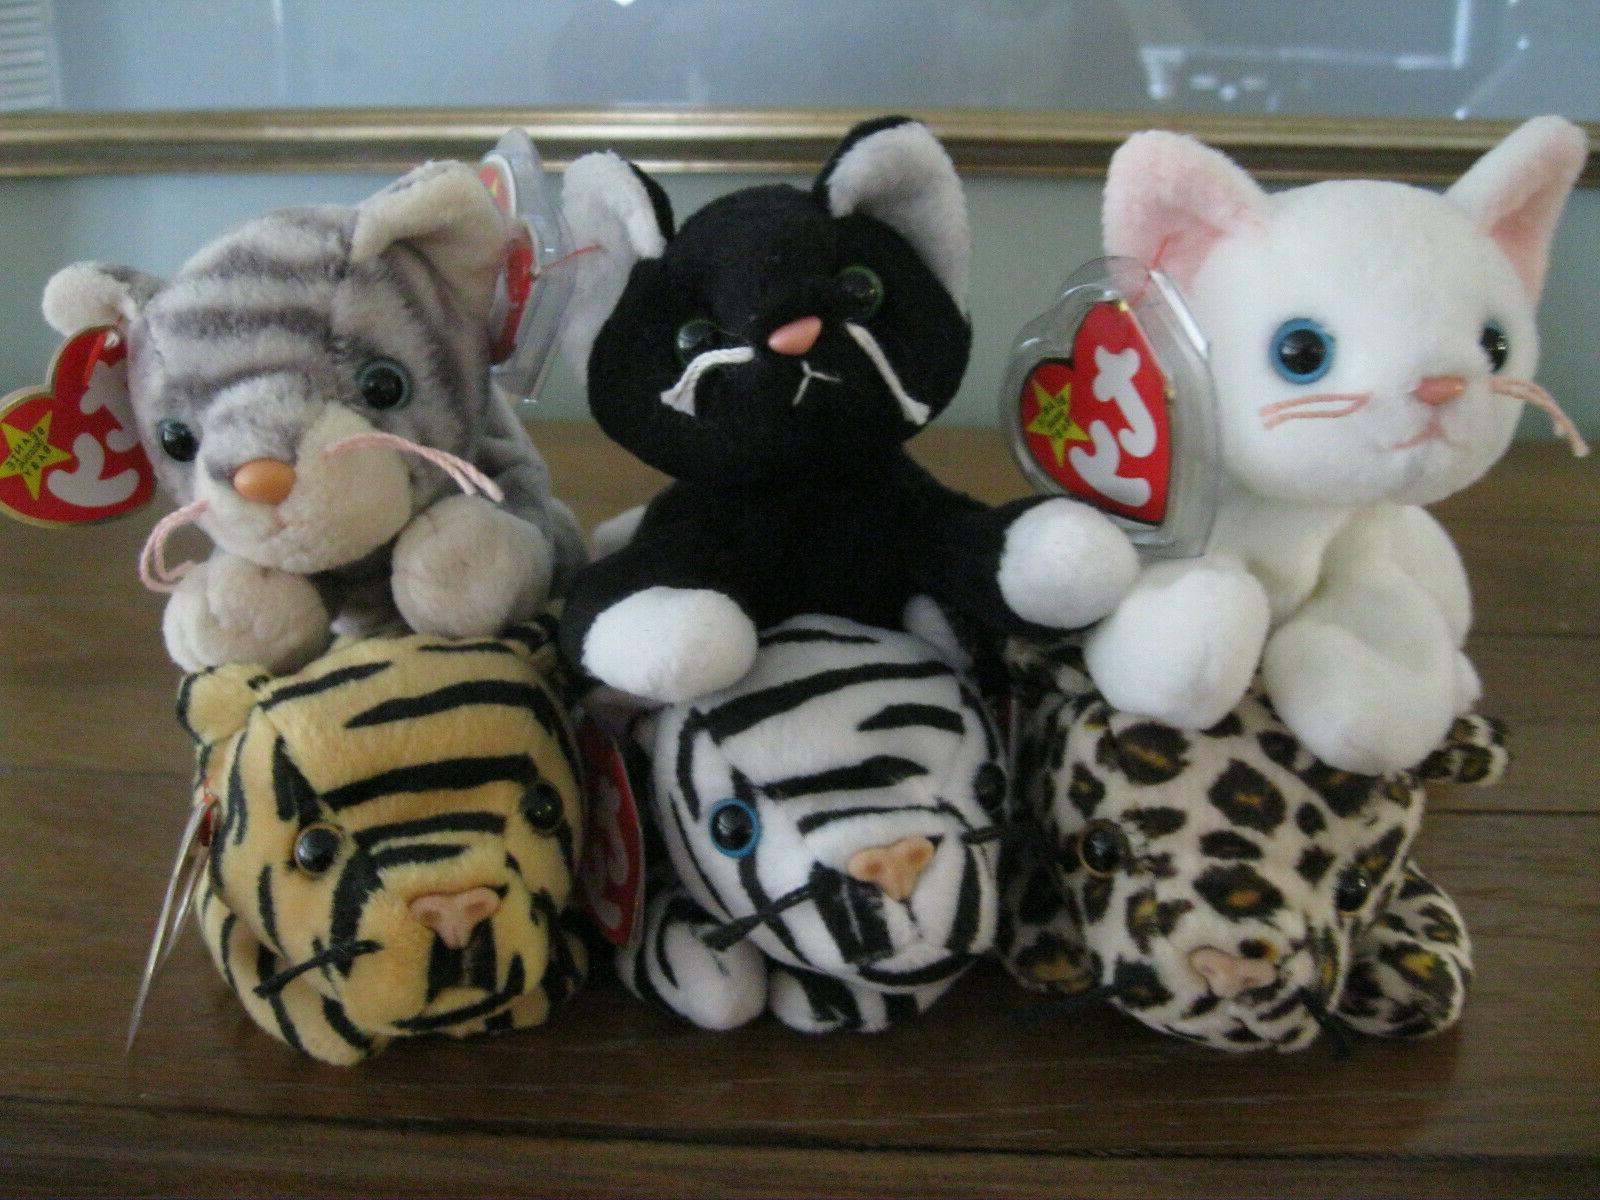 beanie babies cats 6 total mwmt new